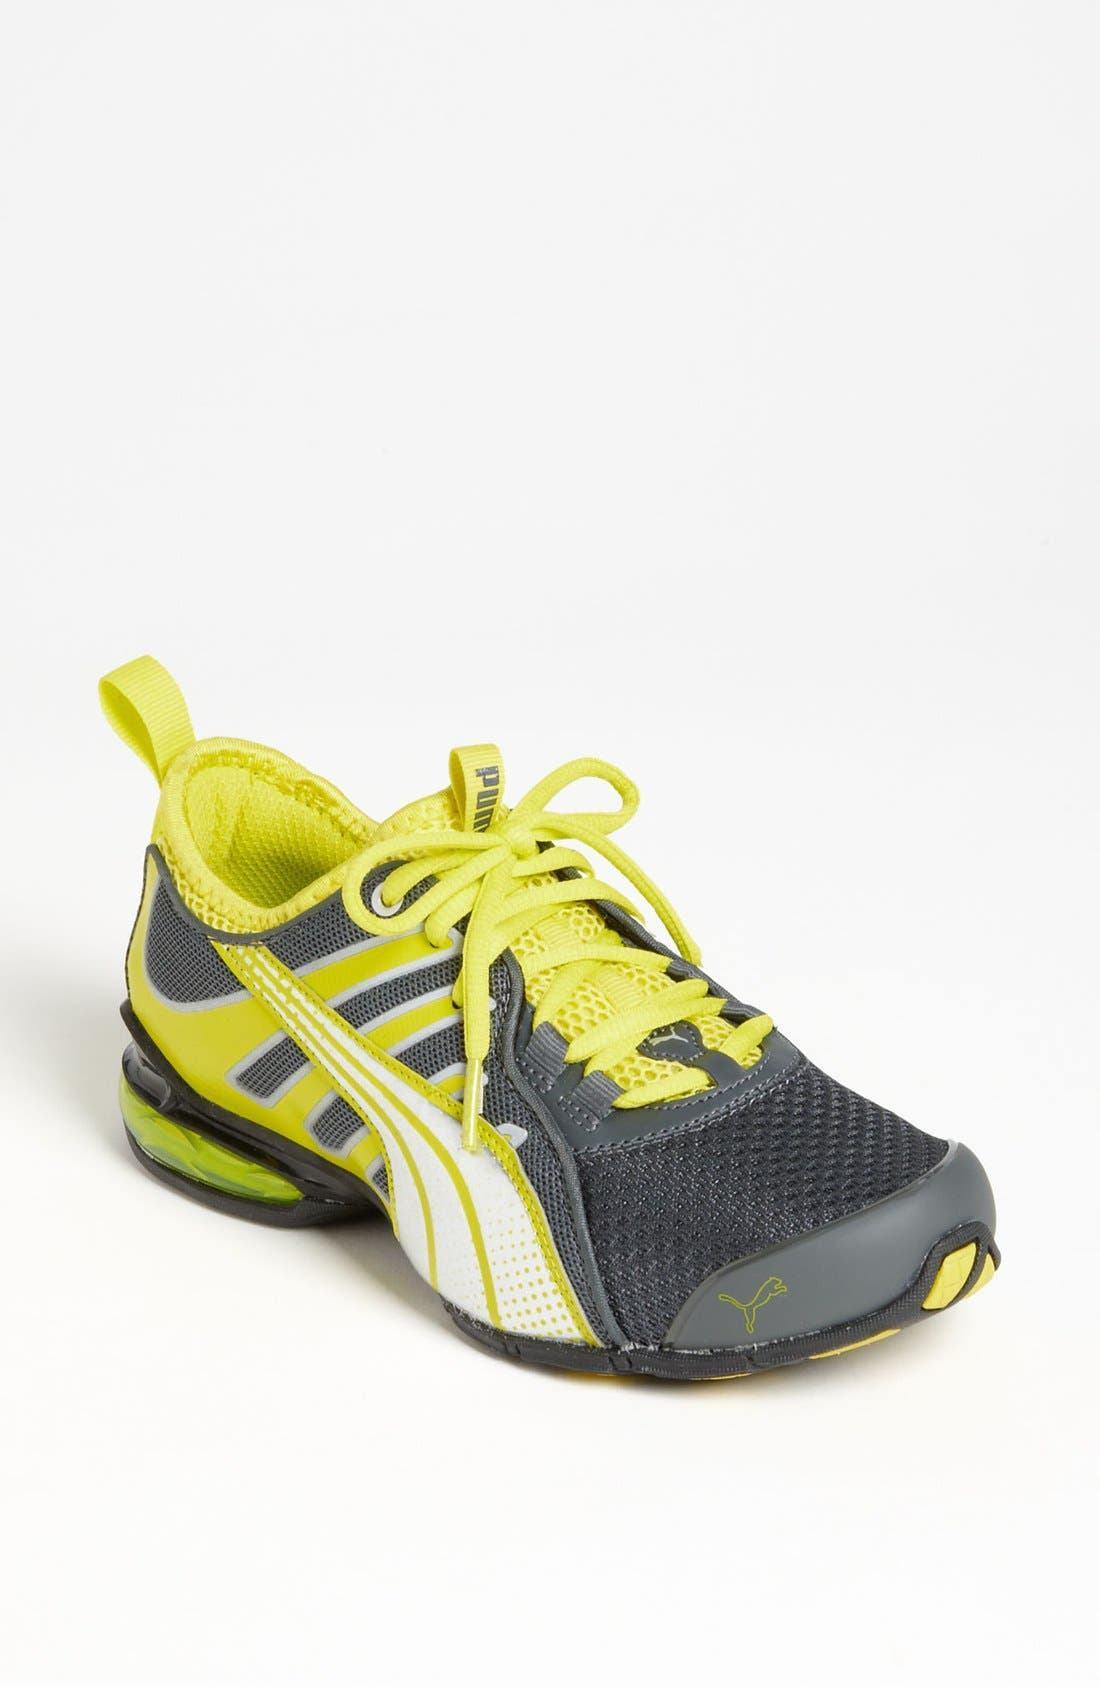 Alternate Image 1 Selected - PUMA 'Voltaic 4' Running Shoe (Women)